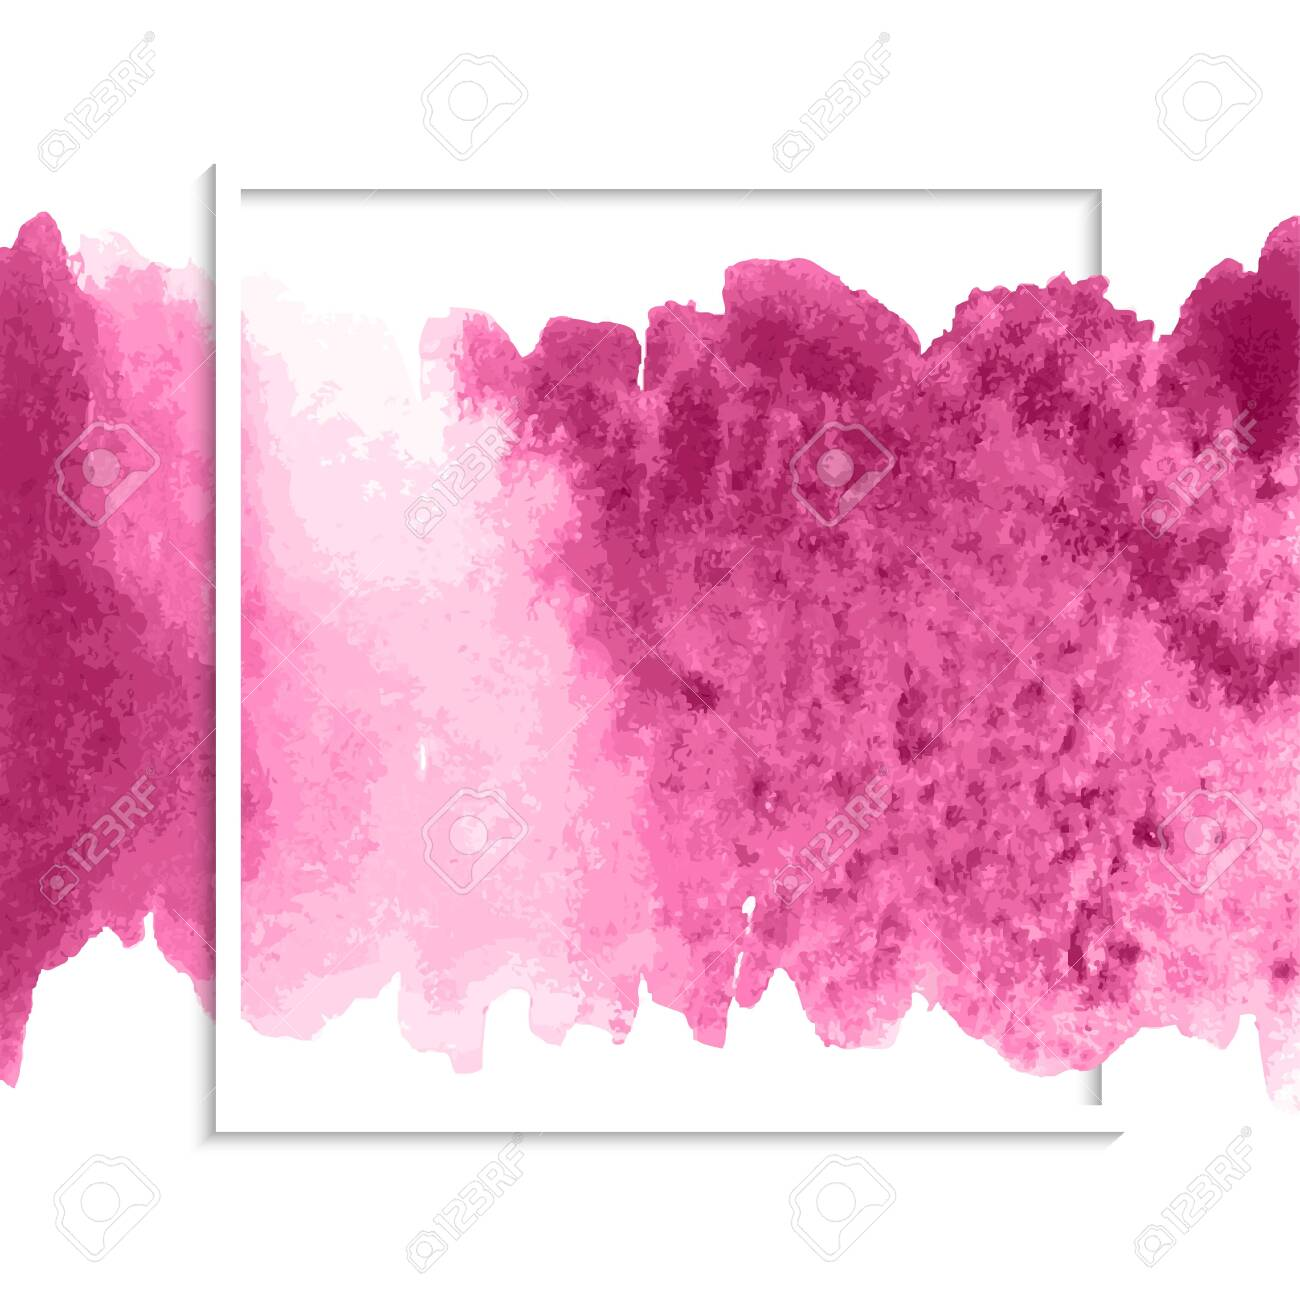 Pink colorful watercolor hand drawn stroke isolated paper grain